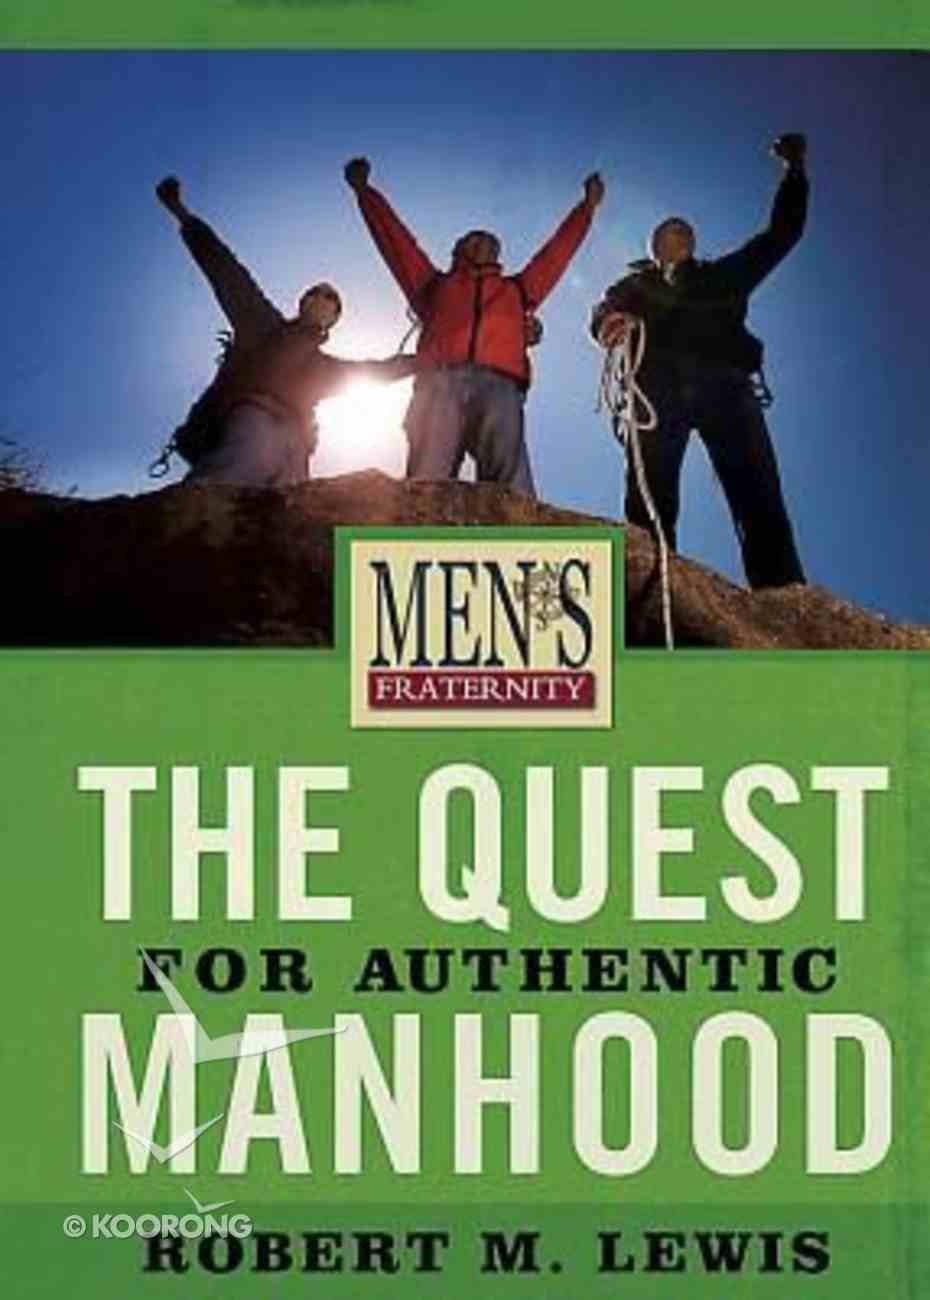 Men's Fraternity: The Quest For Authentic Manhood (Viewer Guide) Paperback